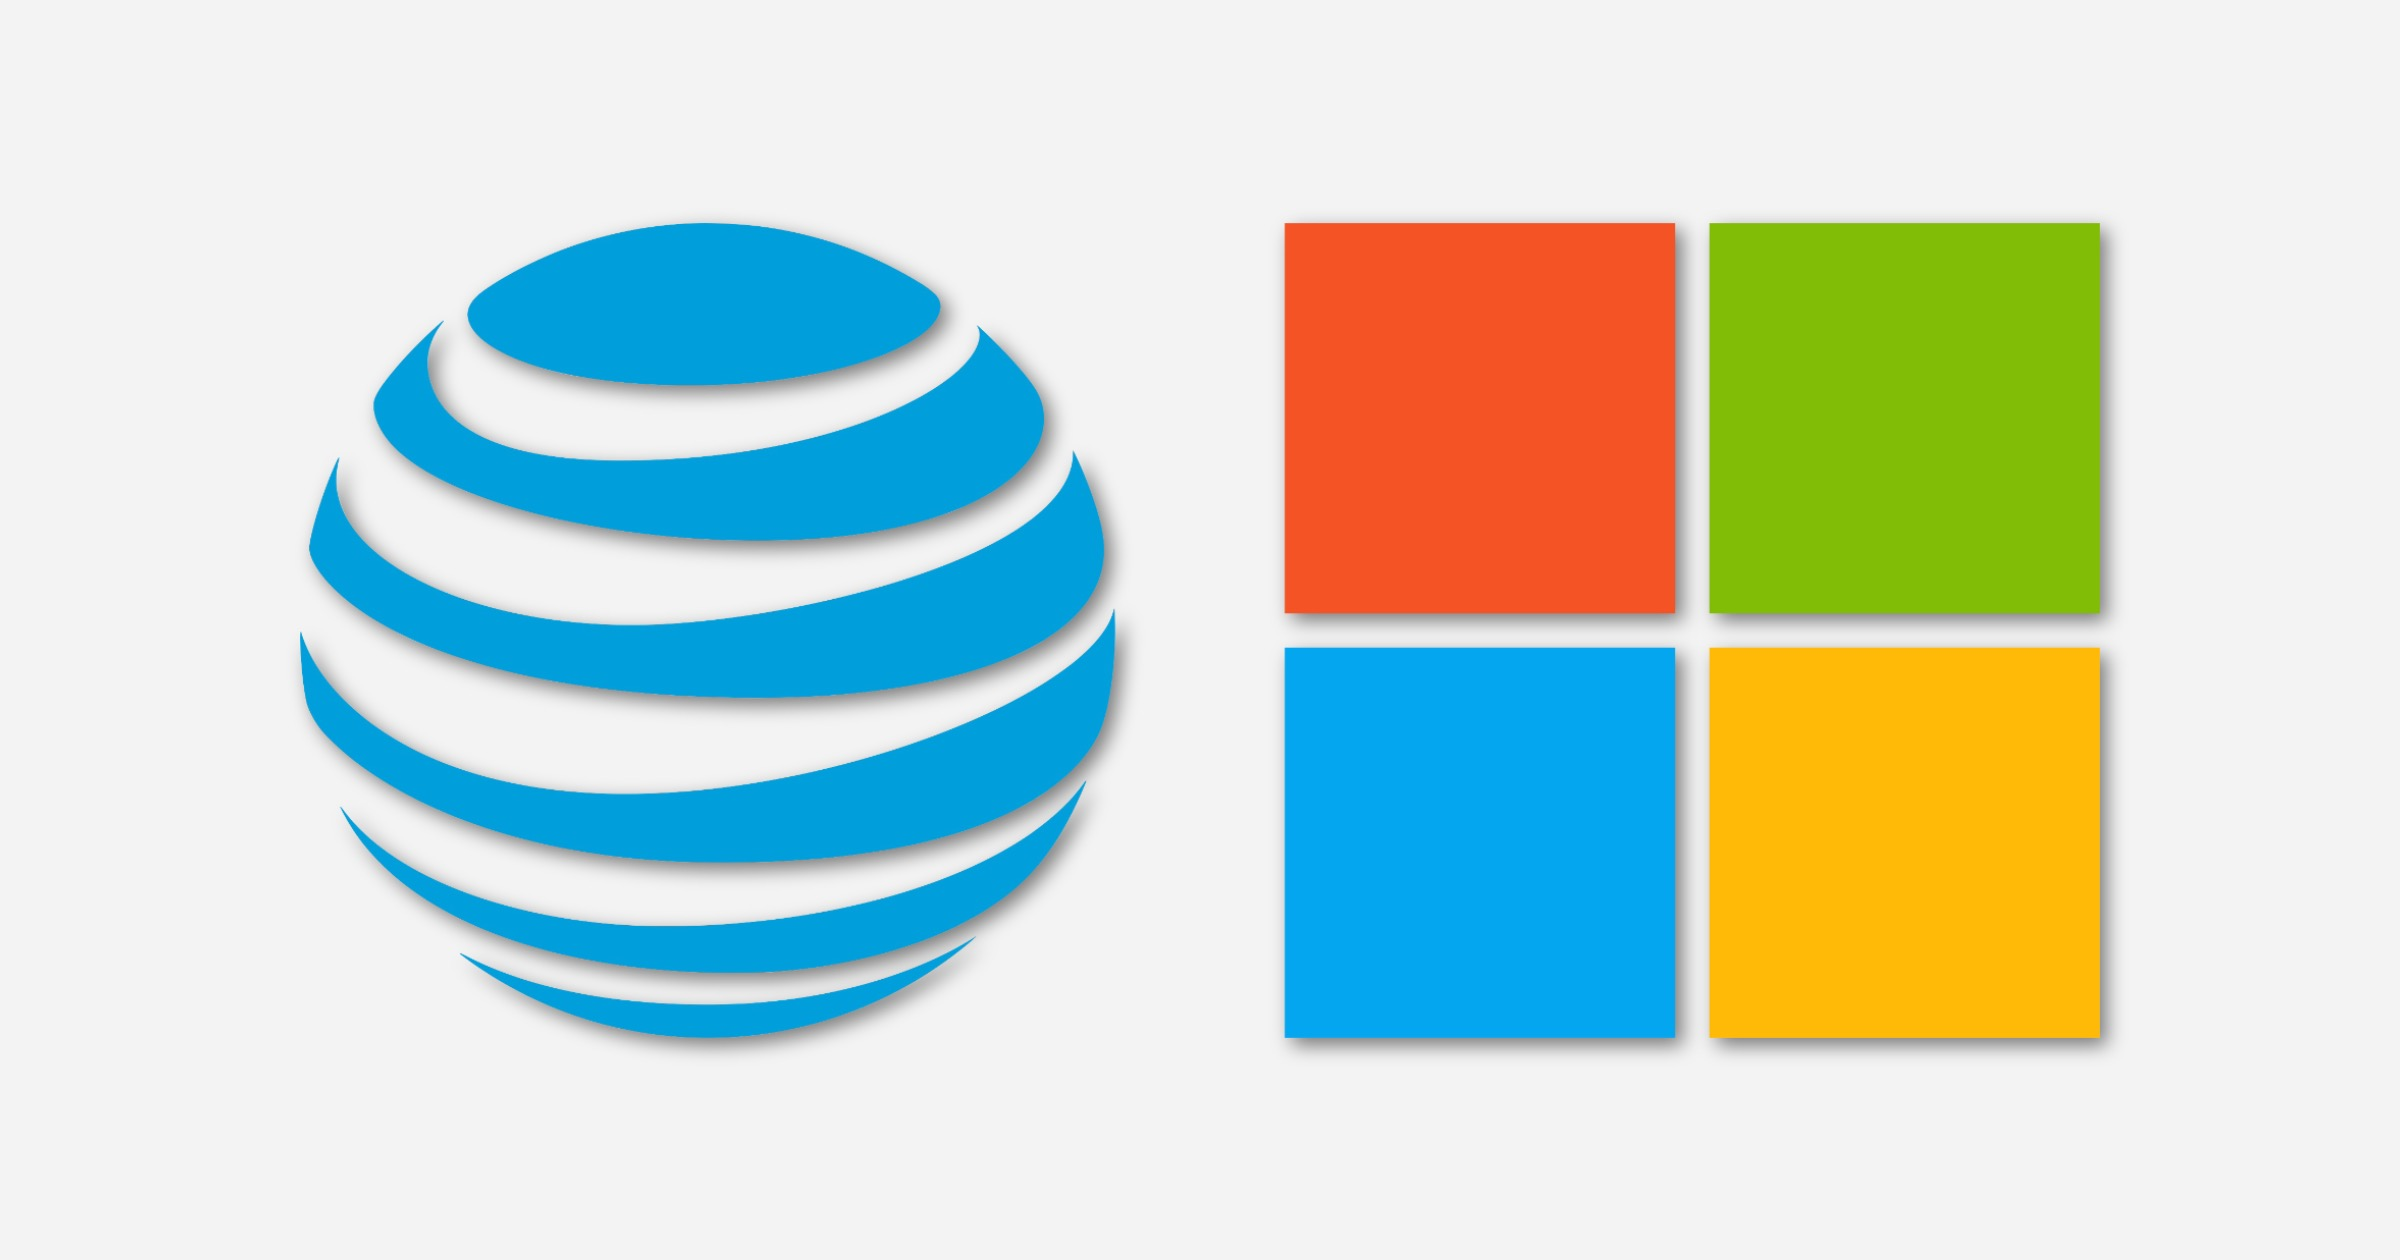 AT&T partners with Microsoft on 5G